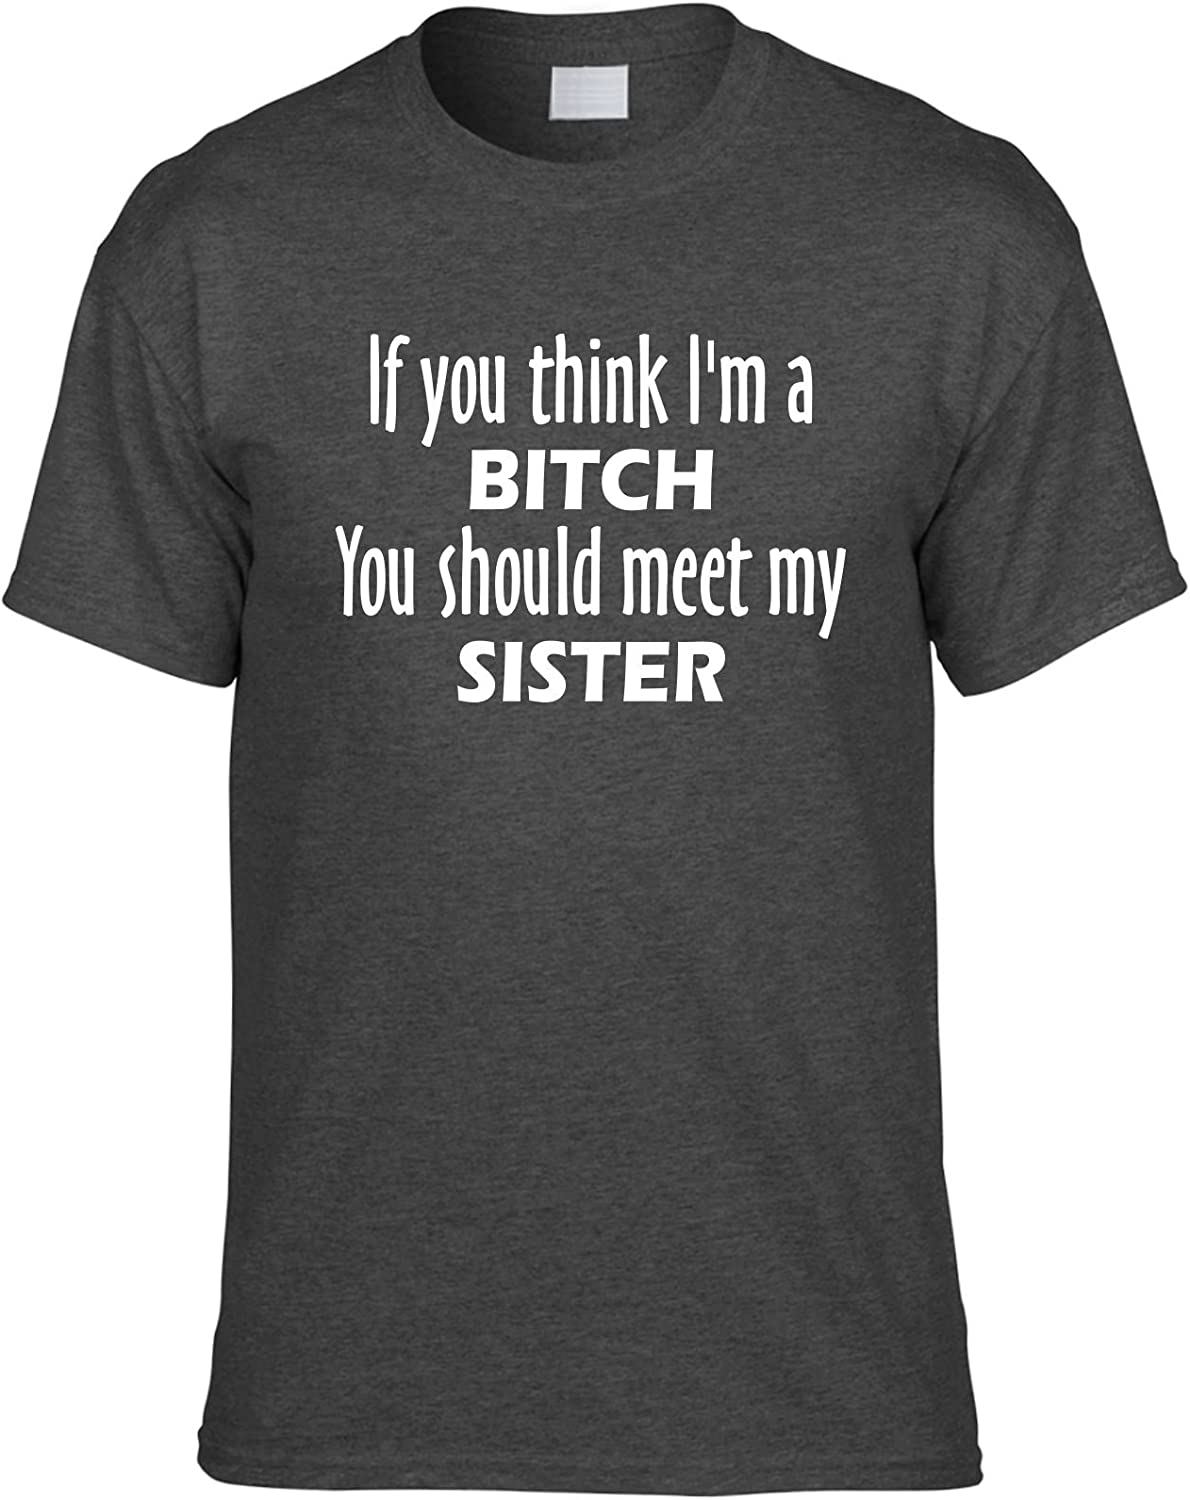 Signature Depot Funny T-Shirt (If You Think I 'm una Perra Usted Debe Satisfacer mi Hermana) Unisex